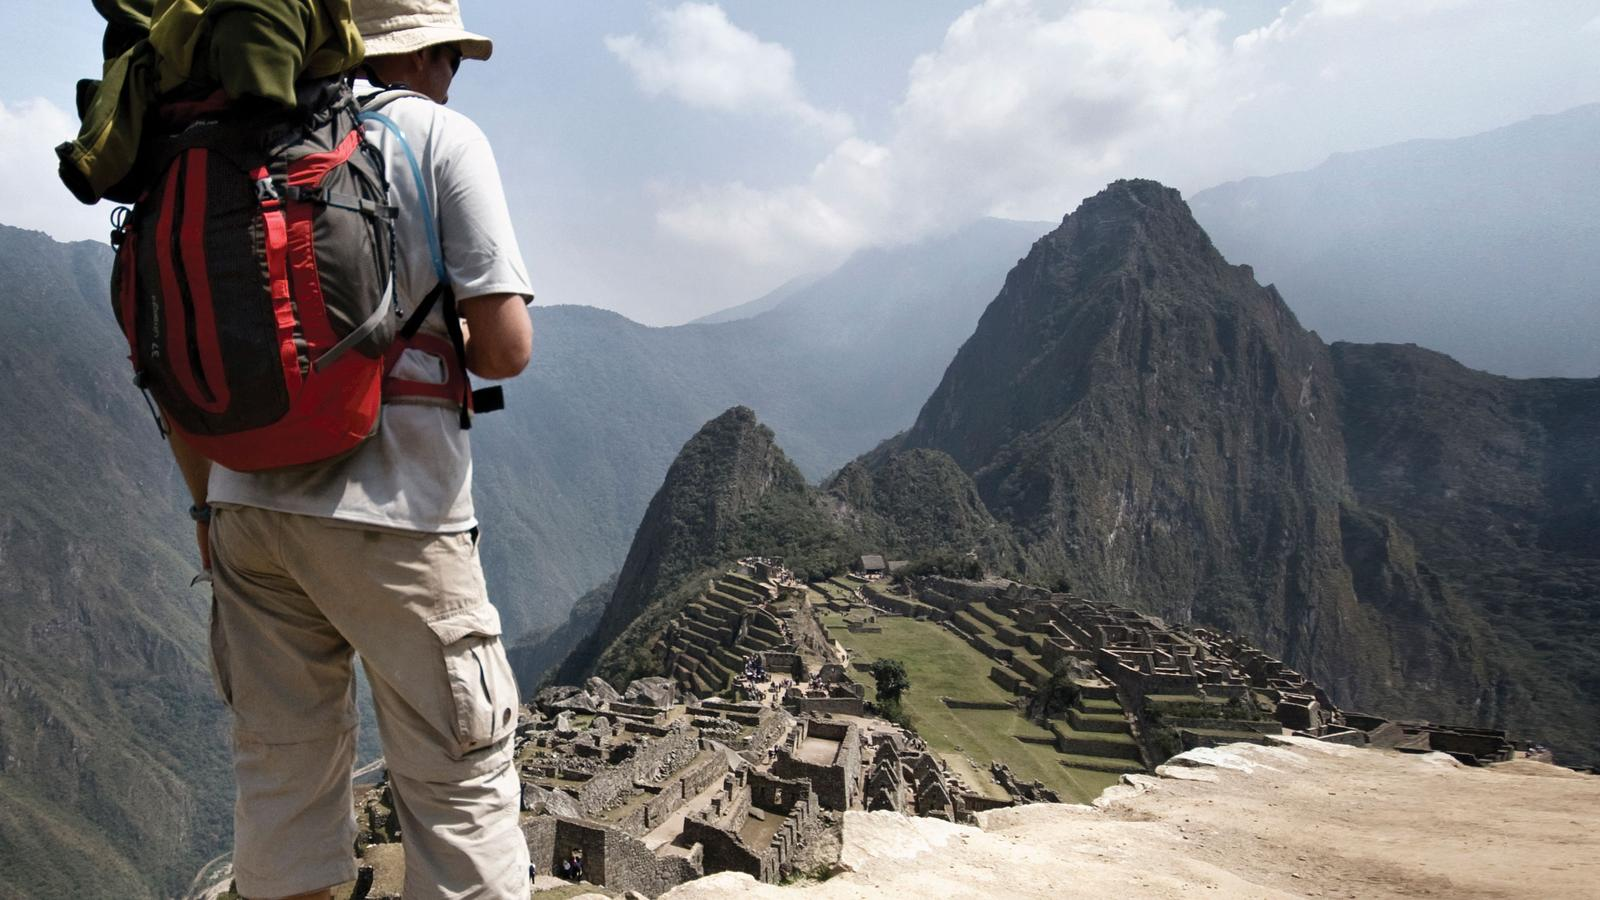 Hiker takes in the view of Machu Picchu